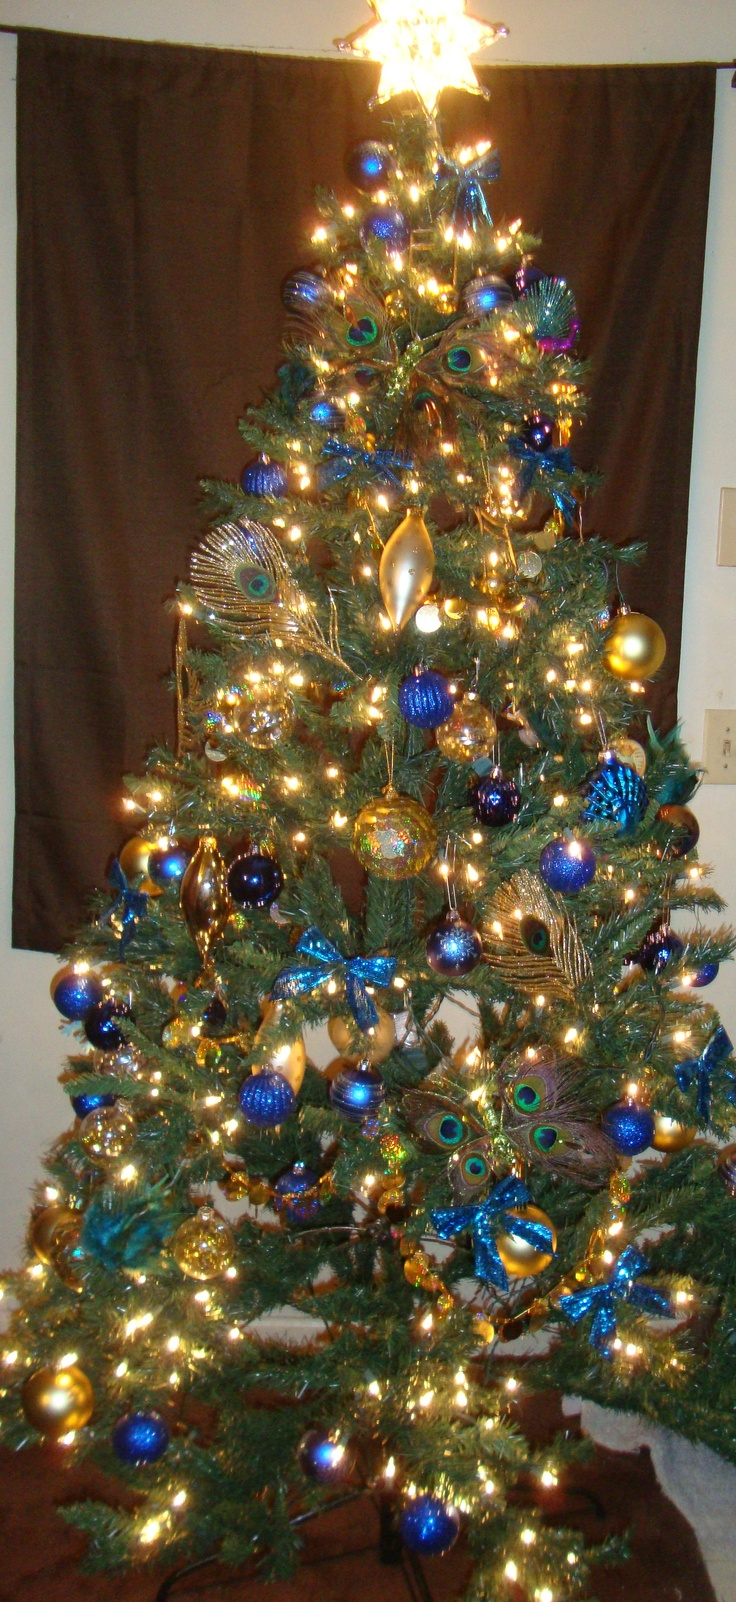 17 Best Images About Peacock Christmas Tree Decorations On